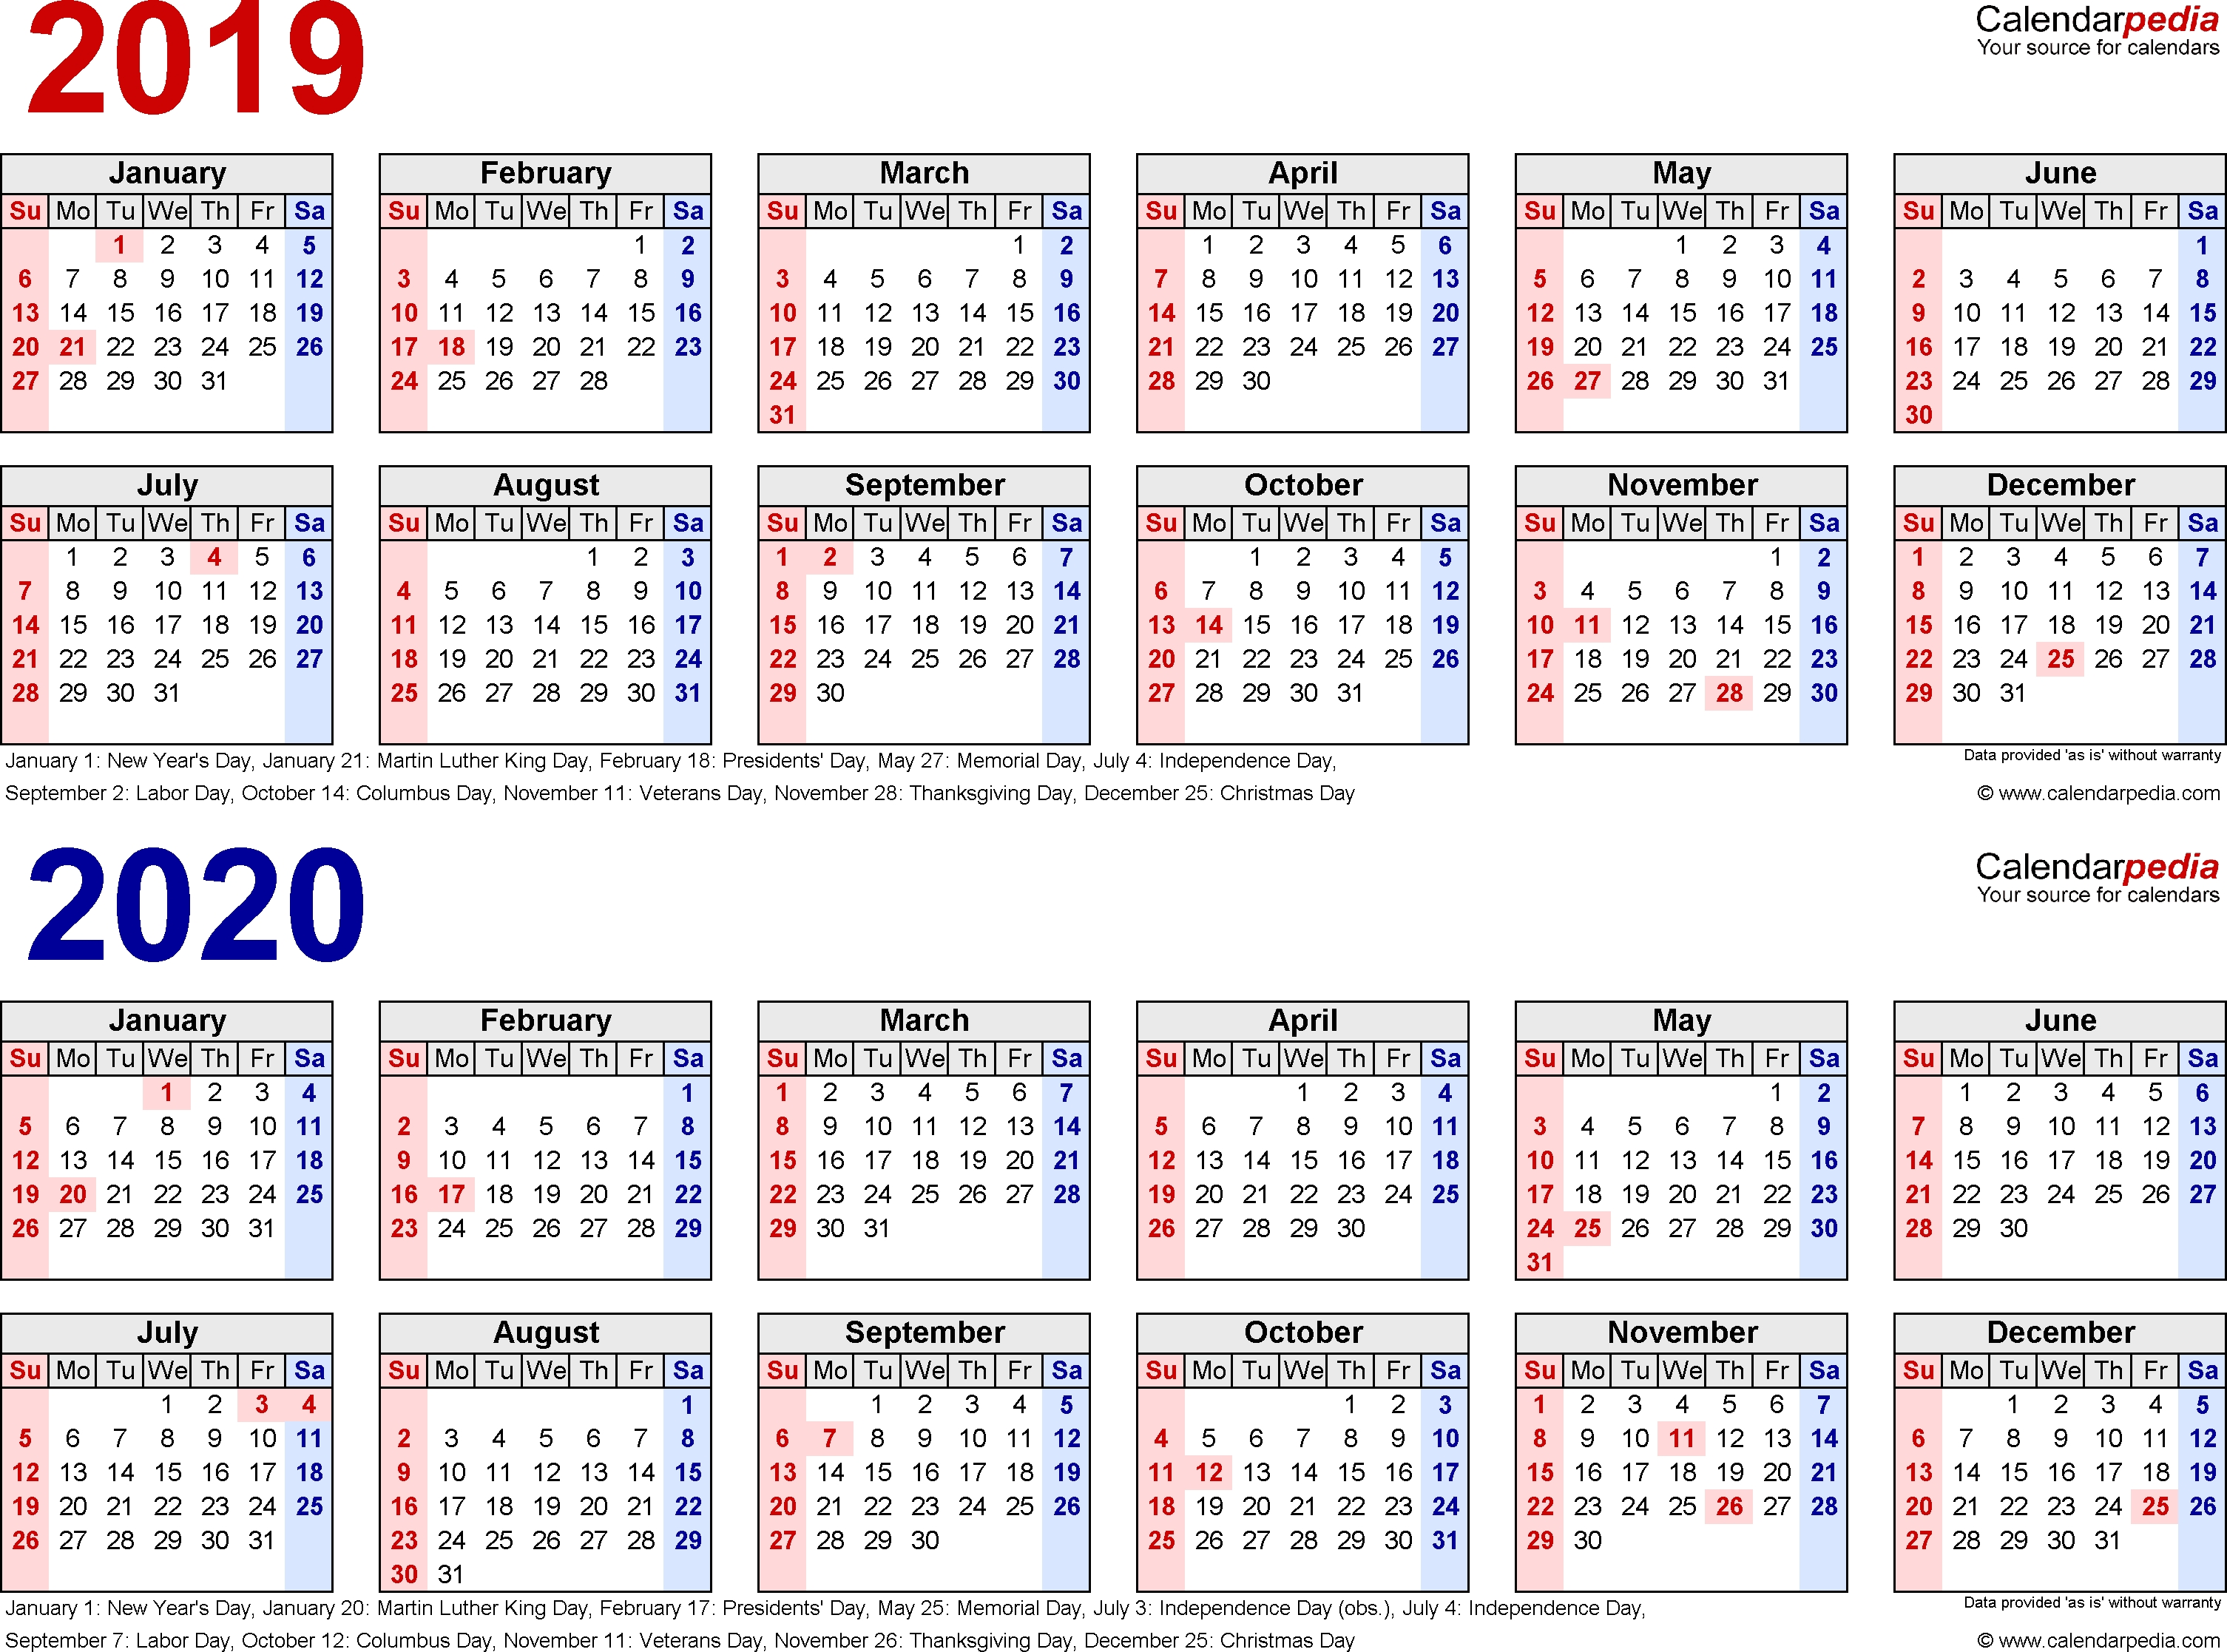 2019-2020 Calendar - Free Printable Two-Year Excel Calendars with Edit Free Calendar Template 2019-2020